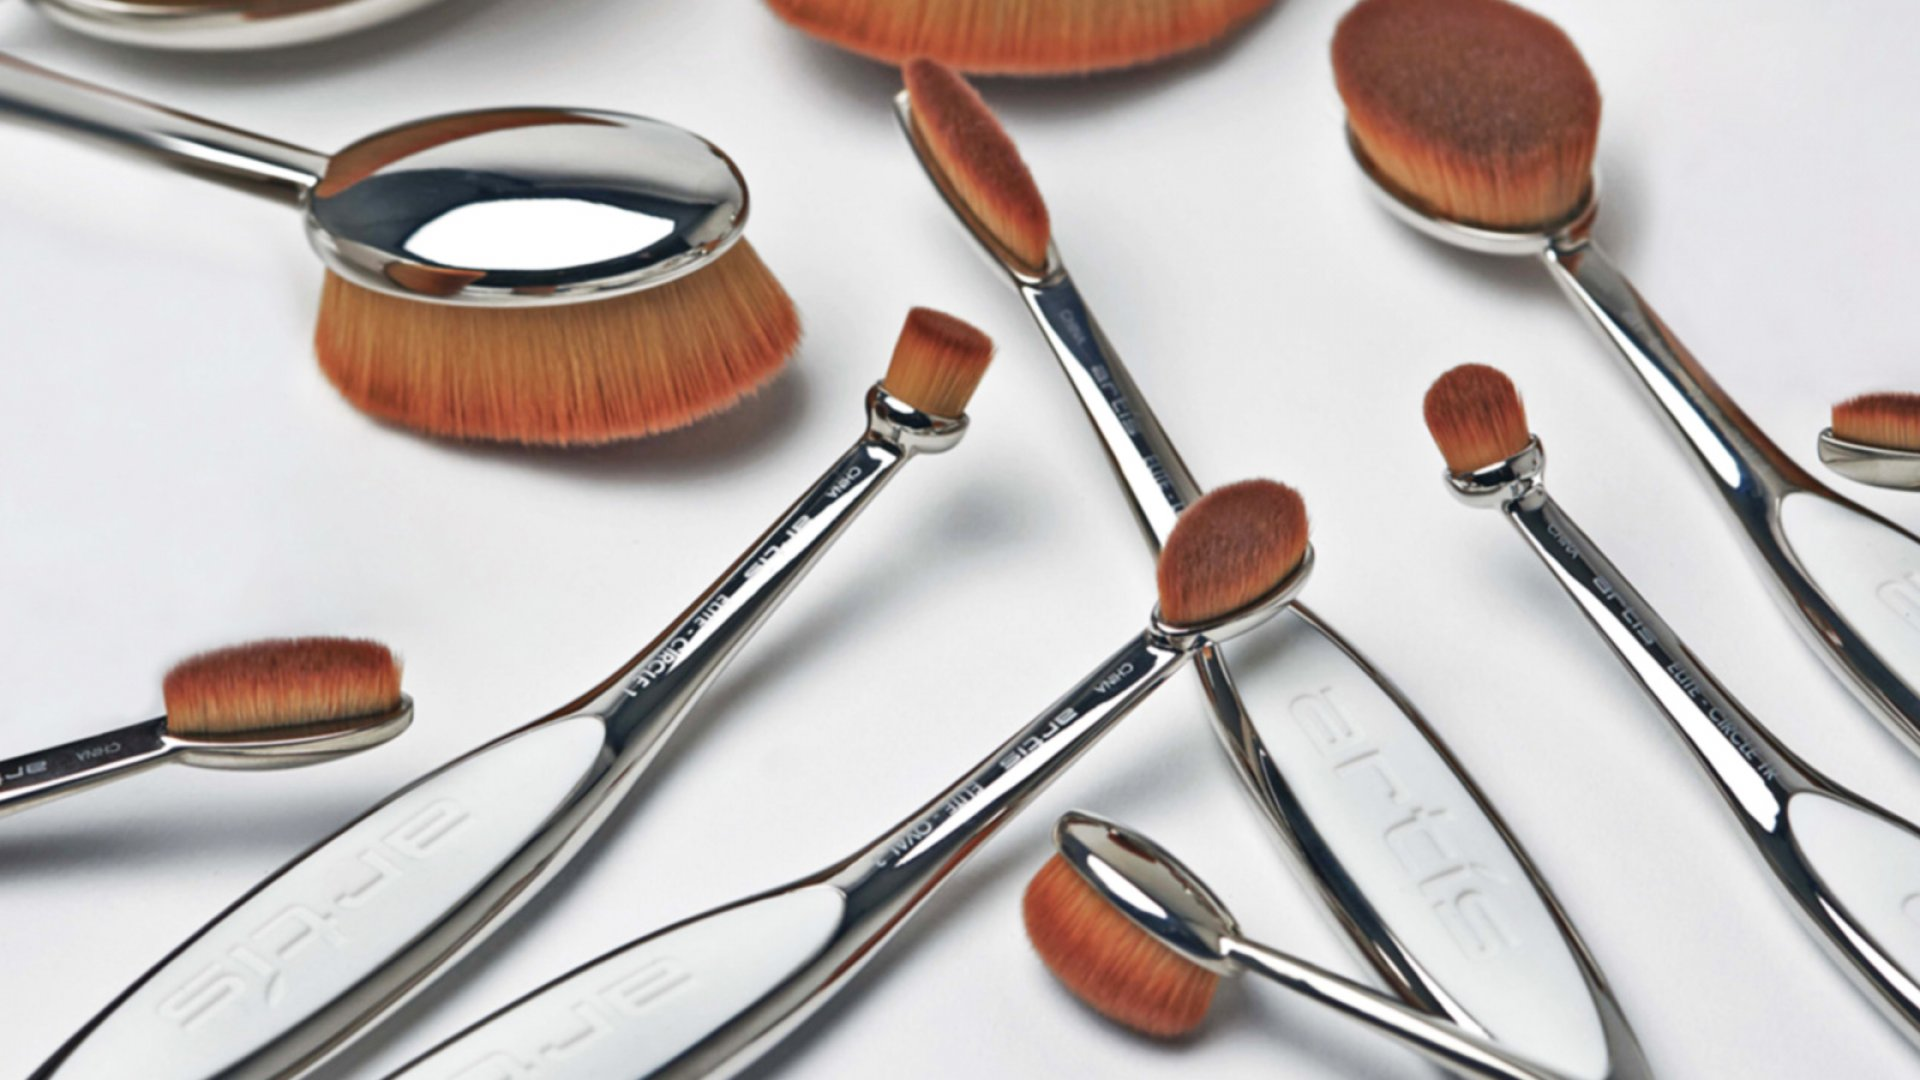 Artis makeup brushes.